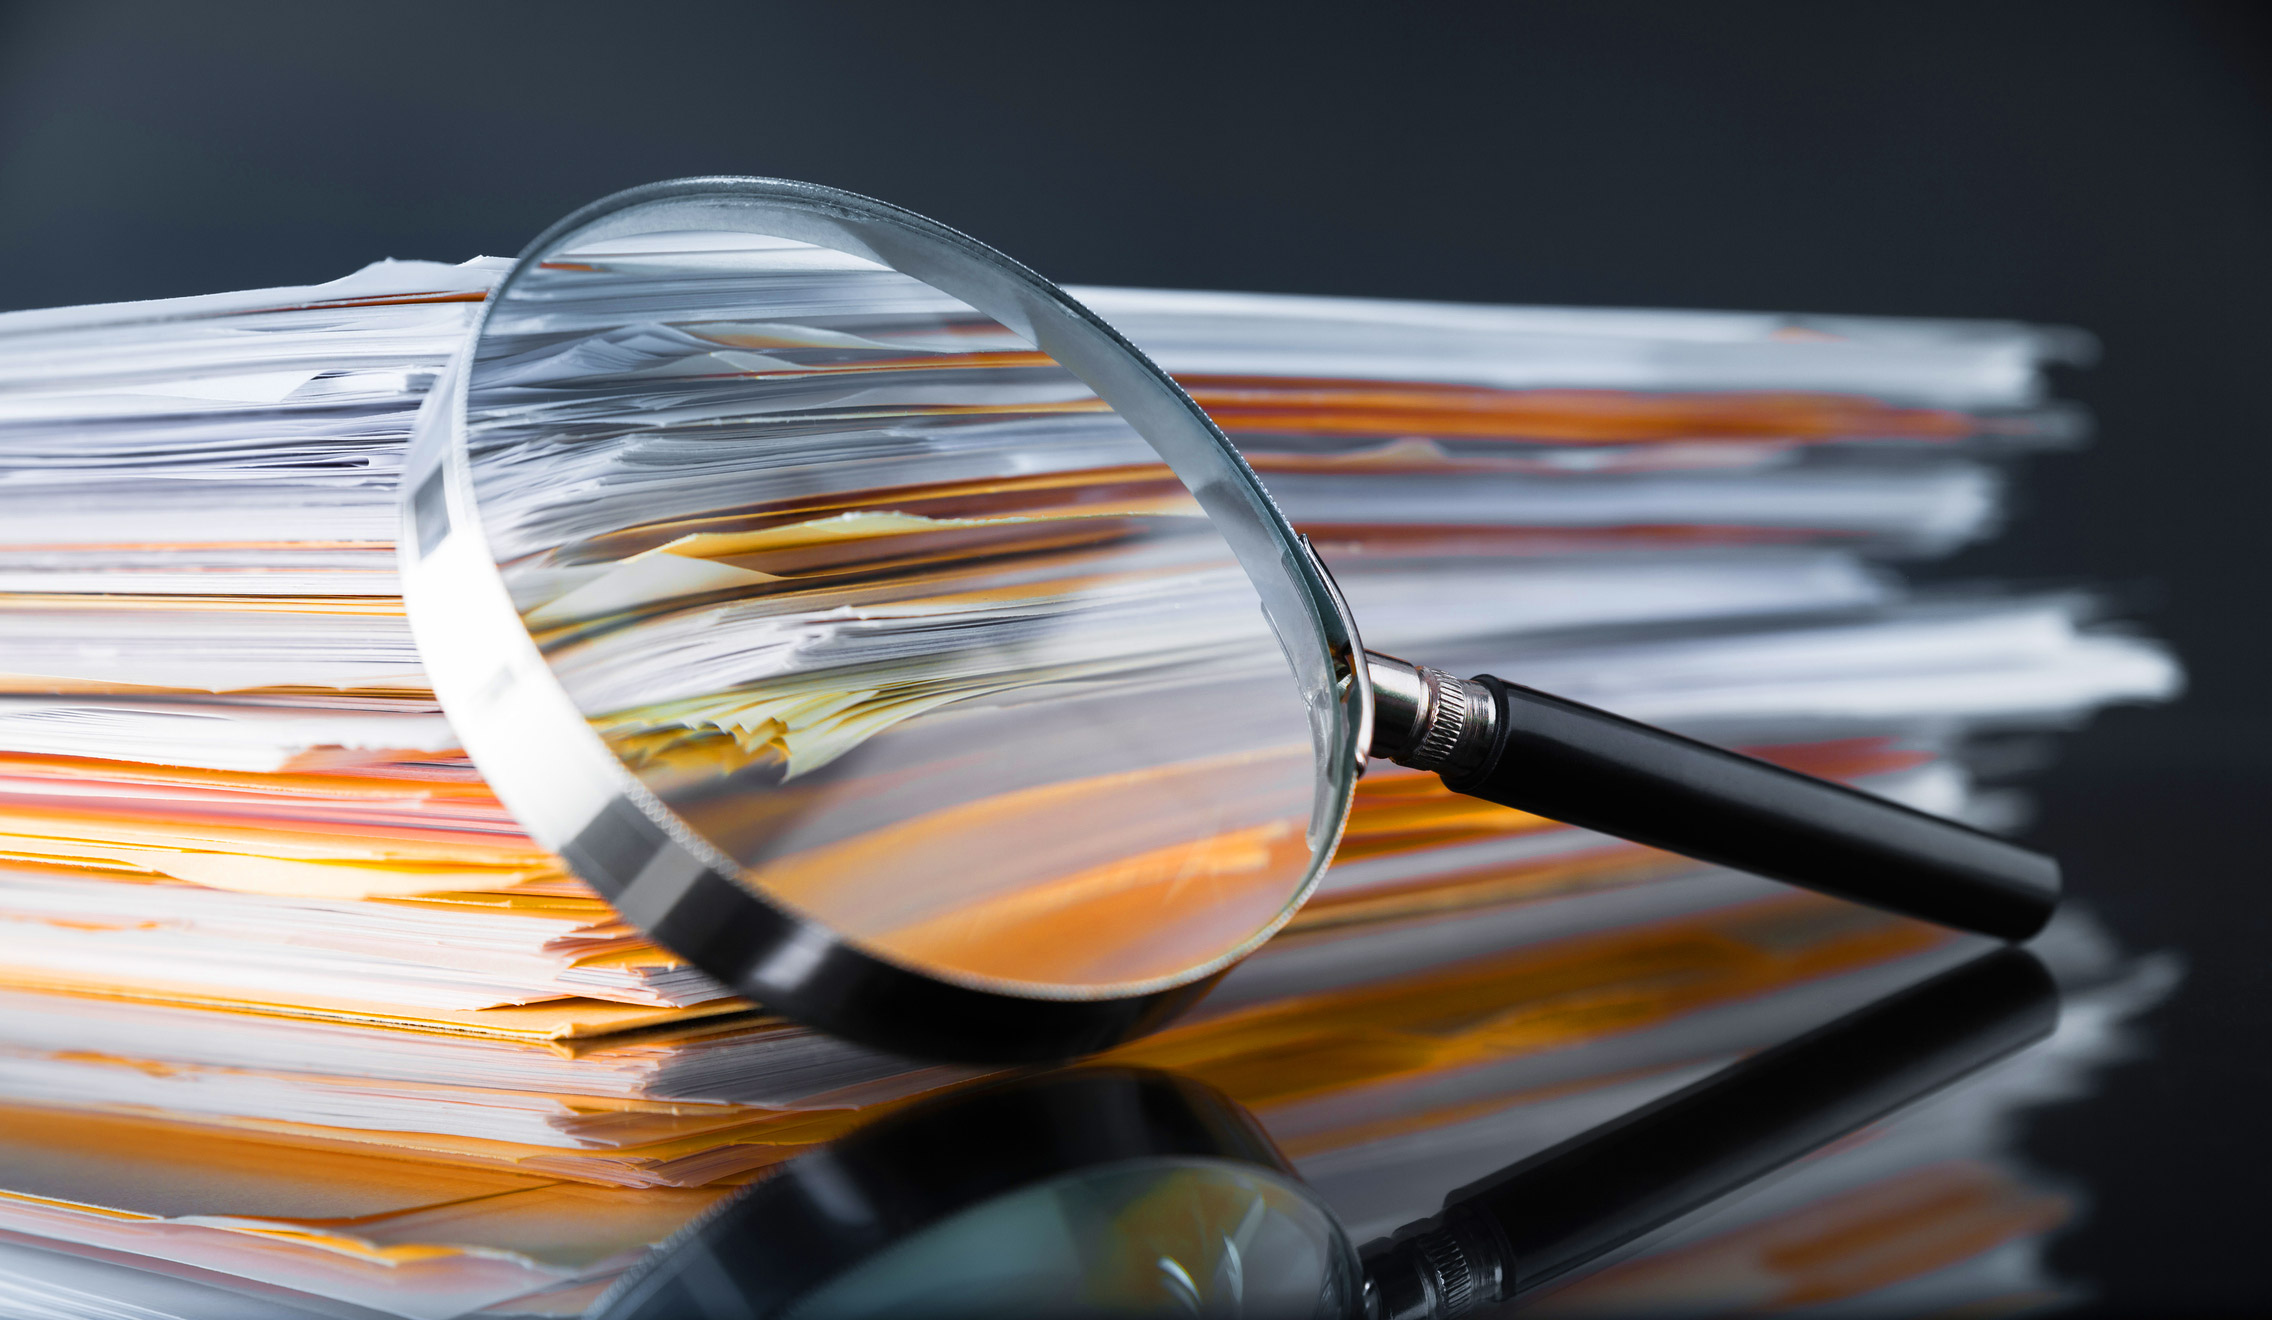 Documents-Search-with-Magnifying-Glass